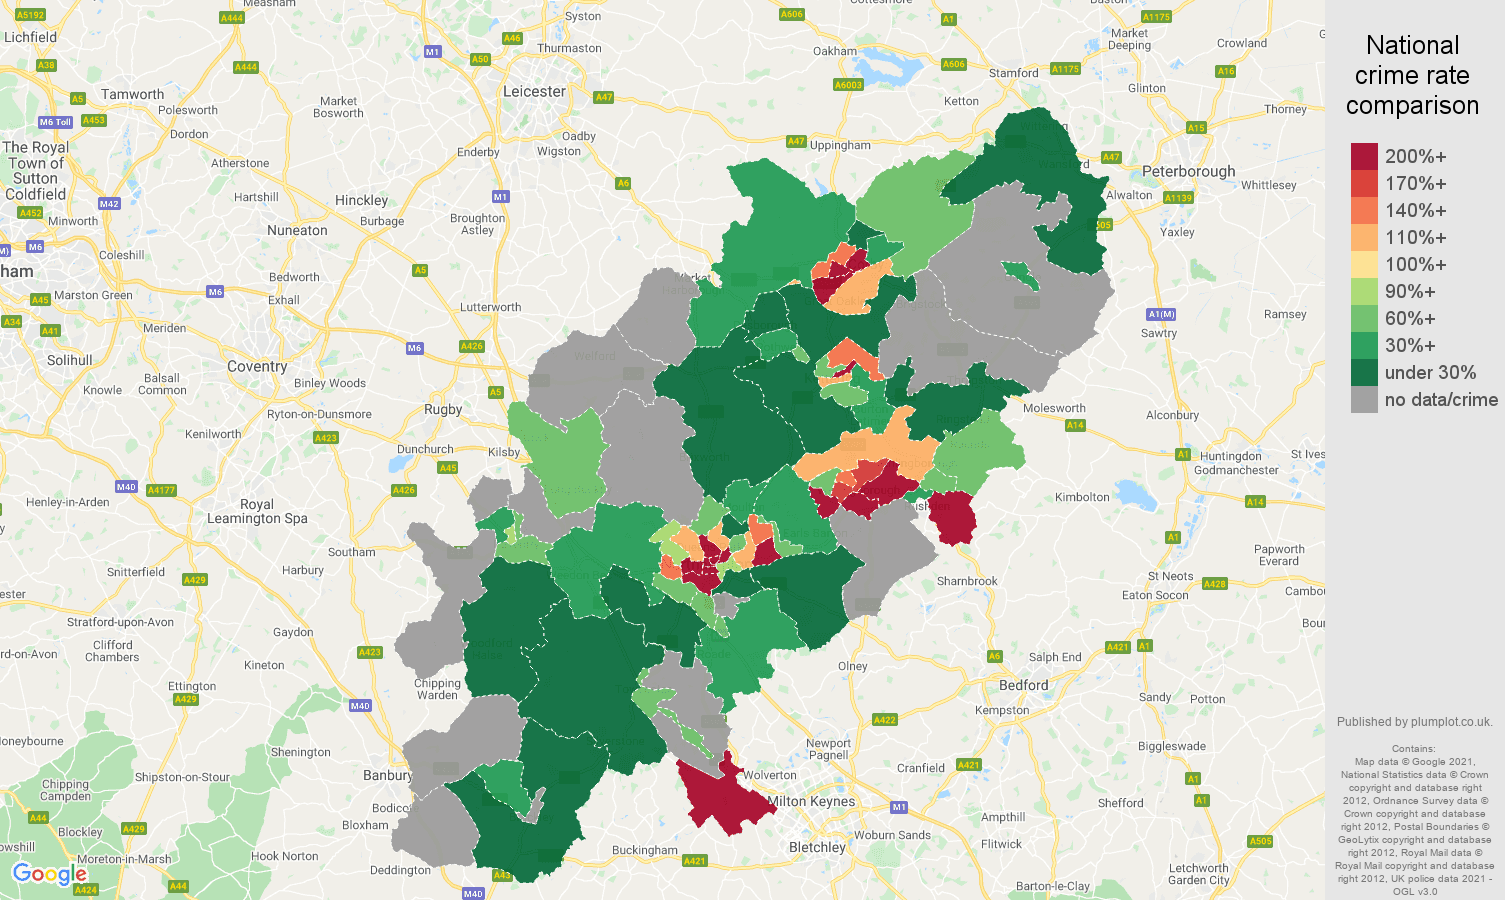 Northamptonshire robbery crime rate comparison map